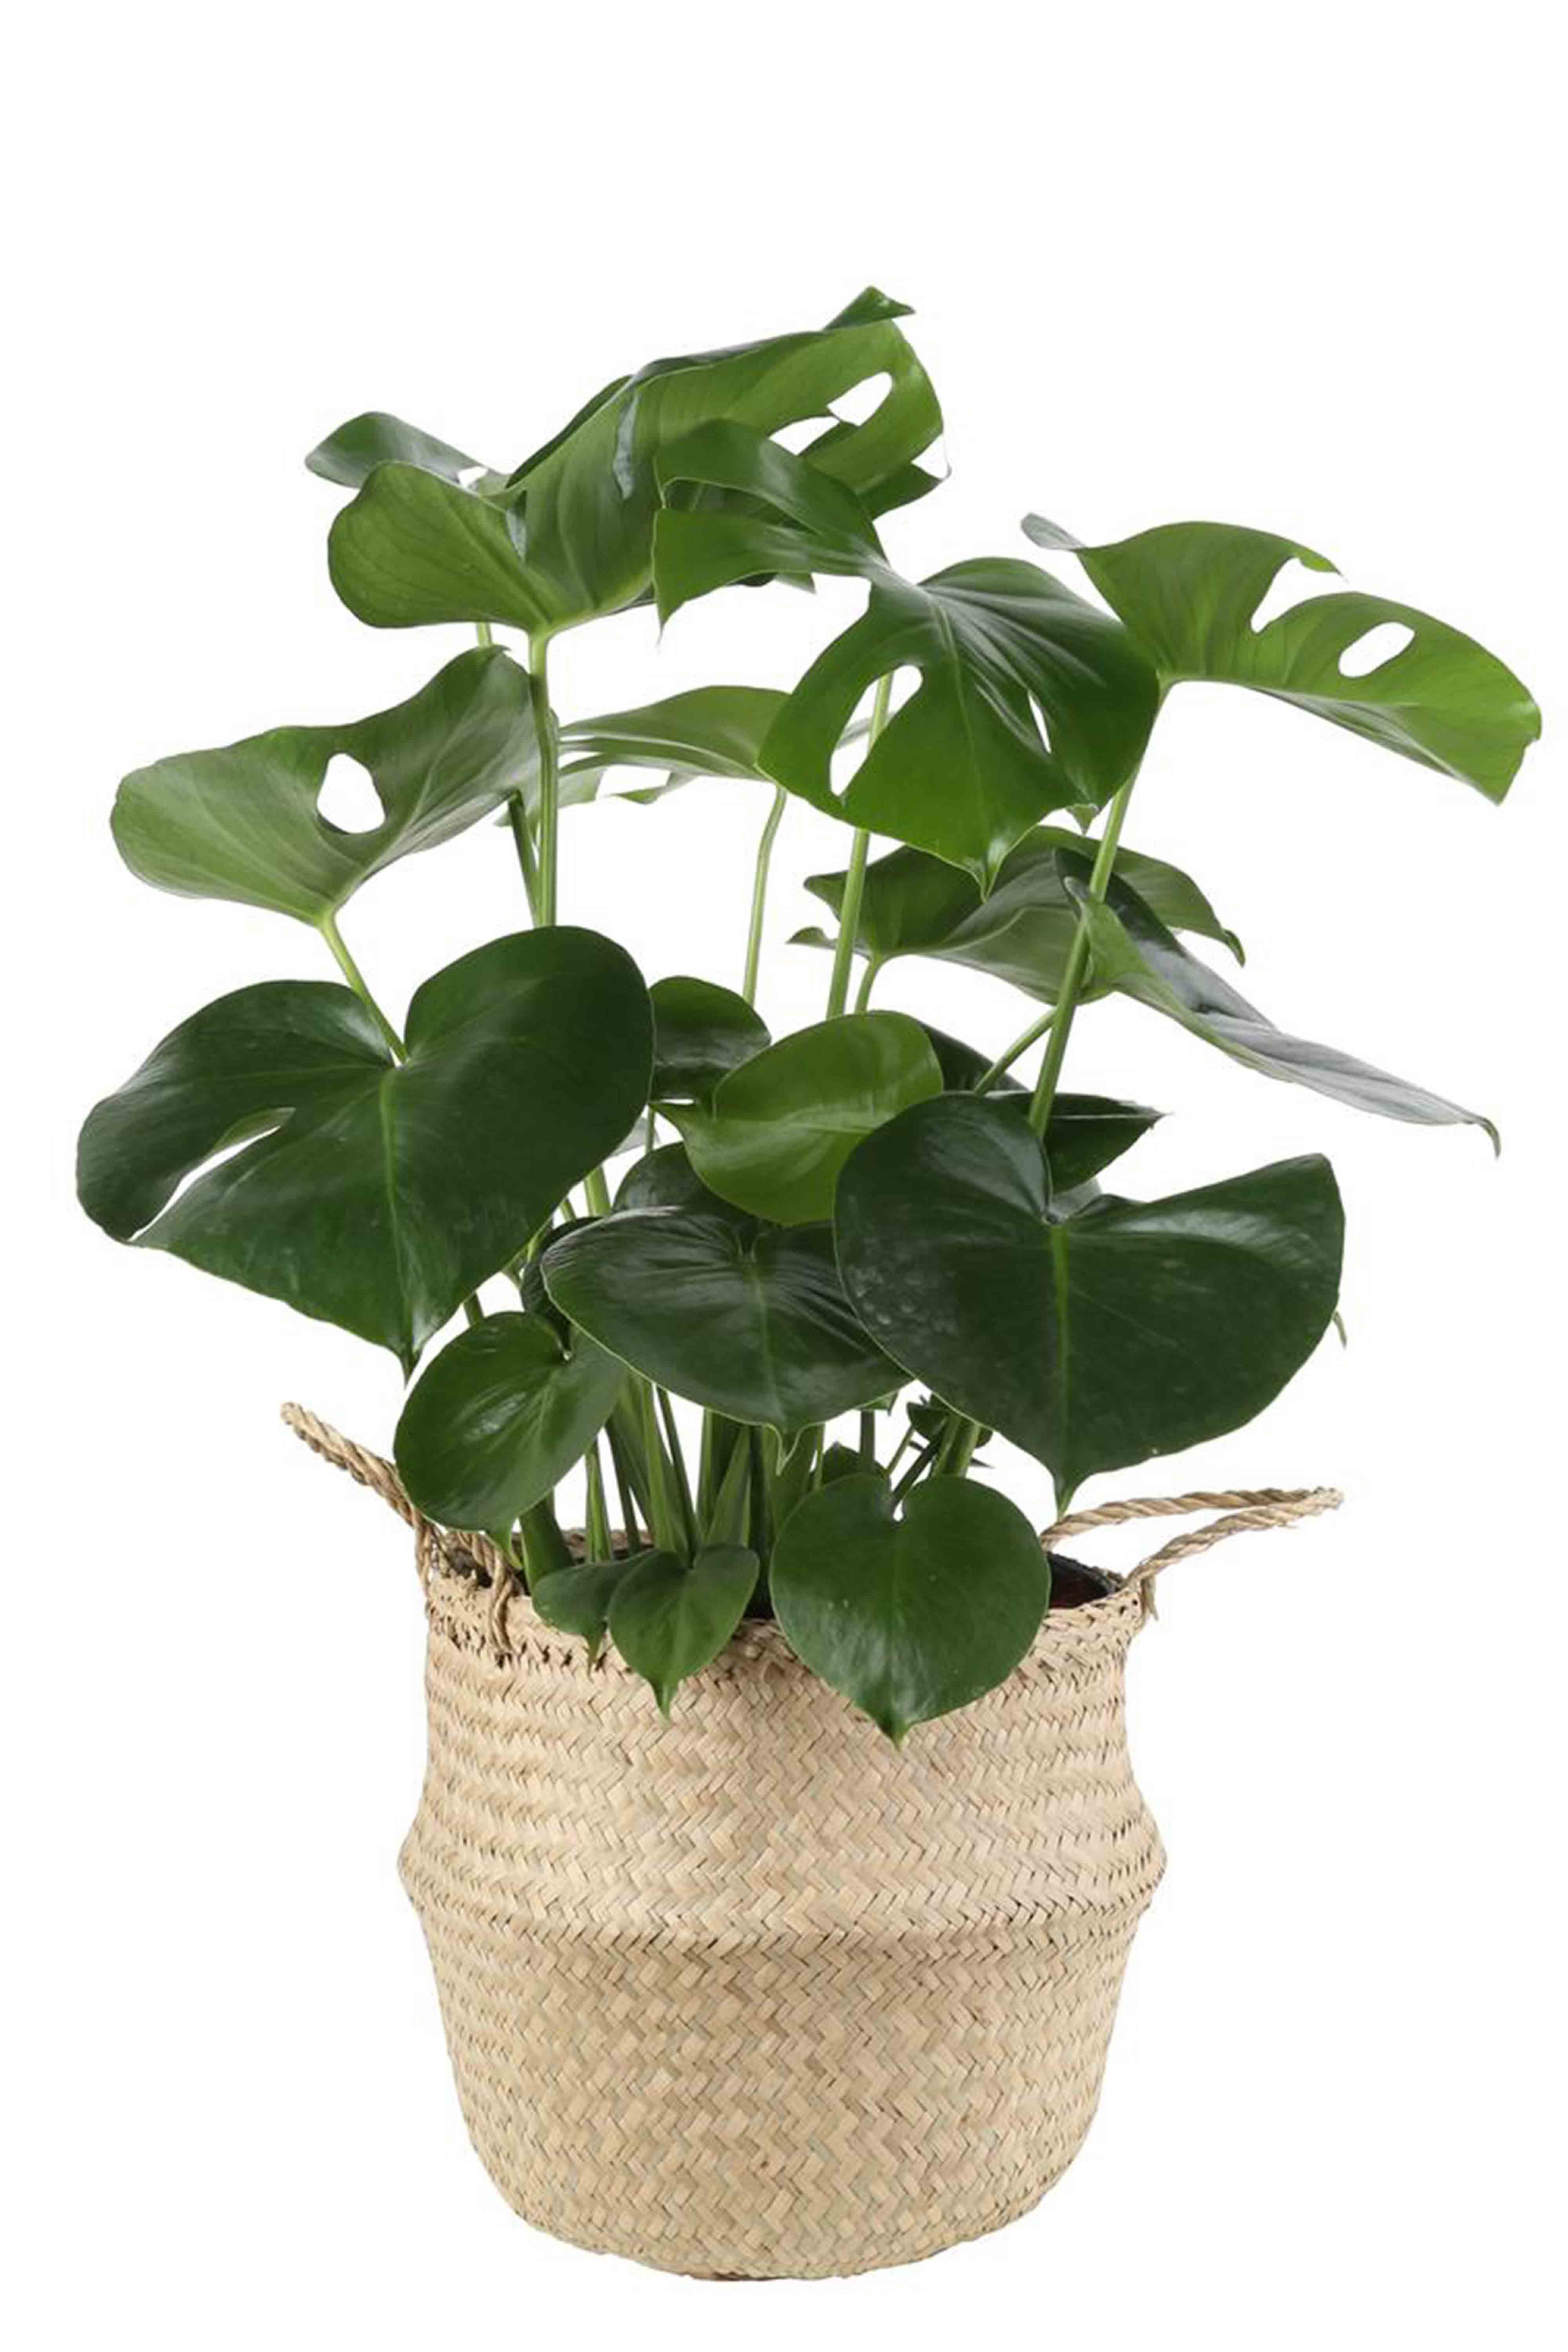 25 Best Indoor Plants For Apartments - Low-Maintenance ... Names Tropical Plants Tall House on household tropical plants, tall modern house plants, tall bamboo house plants, tall tropical trees, indoor plants, large leaf plants, tall orchids, long tropical leaf plants, tall flowers, tall cactus house plants, tall plant table, tall red house plants, tall container gardening, types of house plants, tall tree house plants, tall house plants low light, tall common house plants, tall tropical pots,